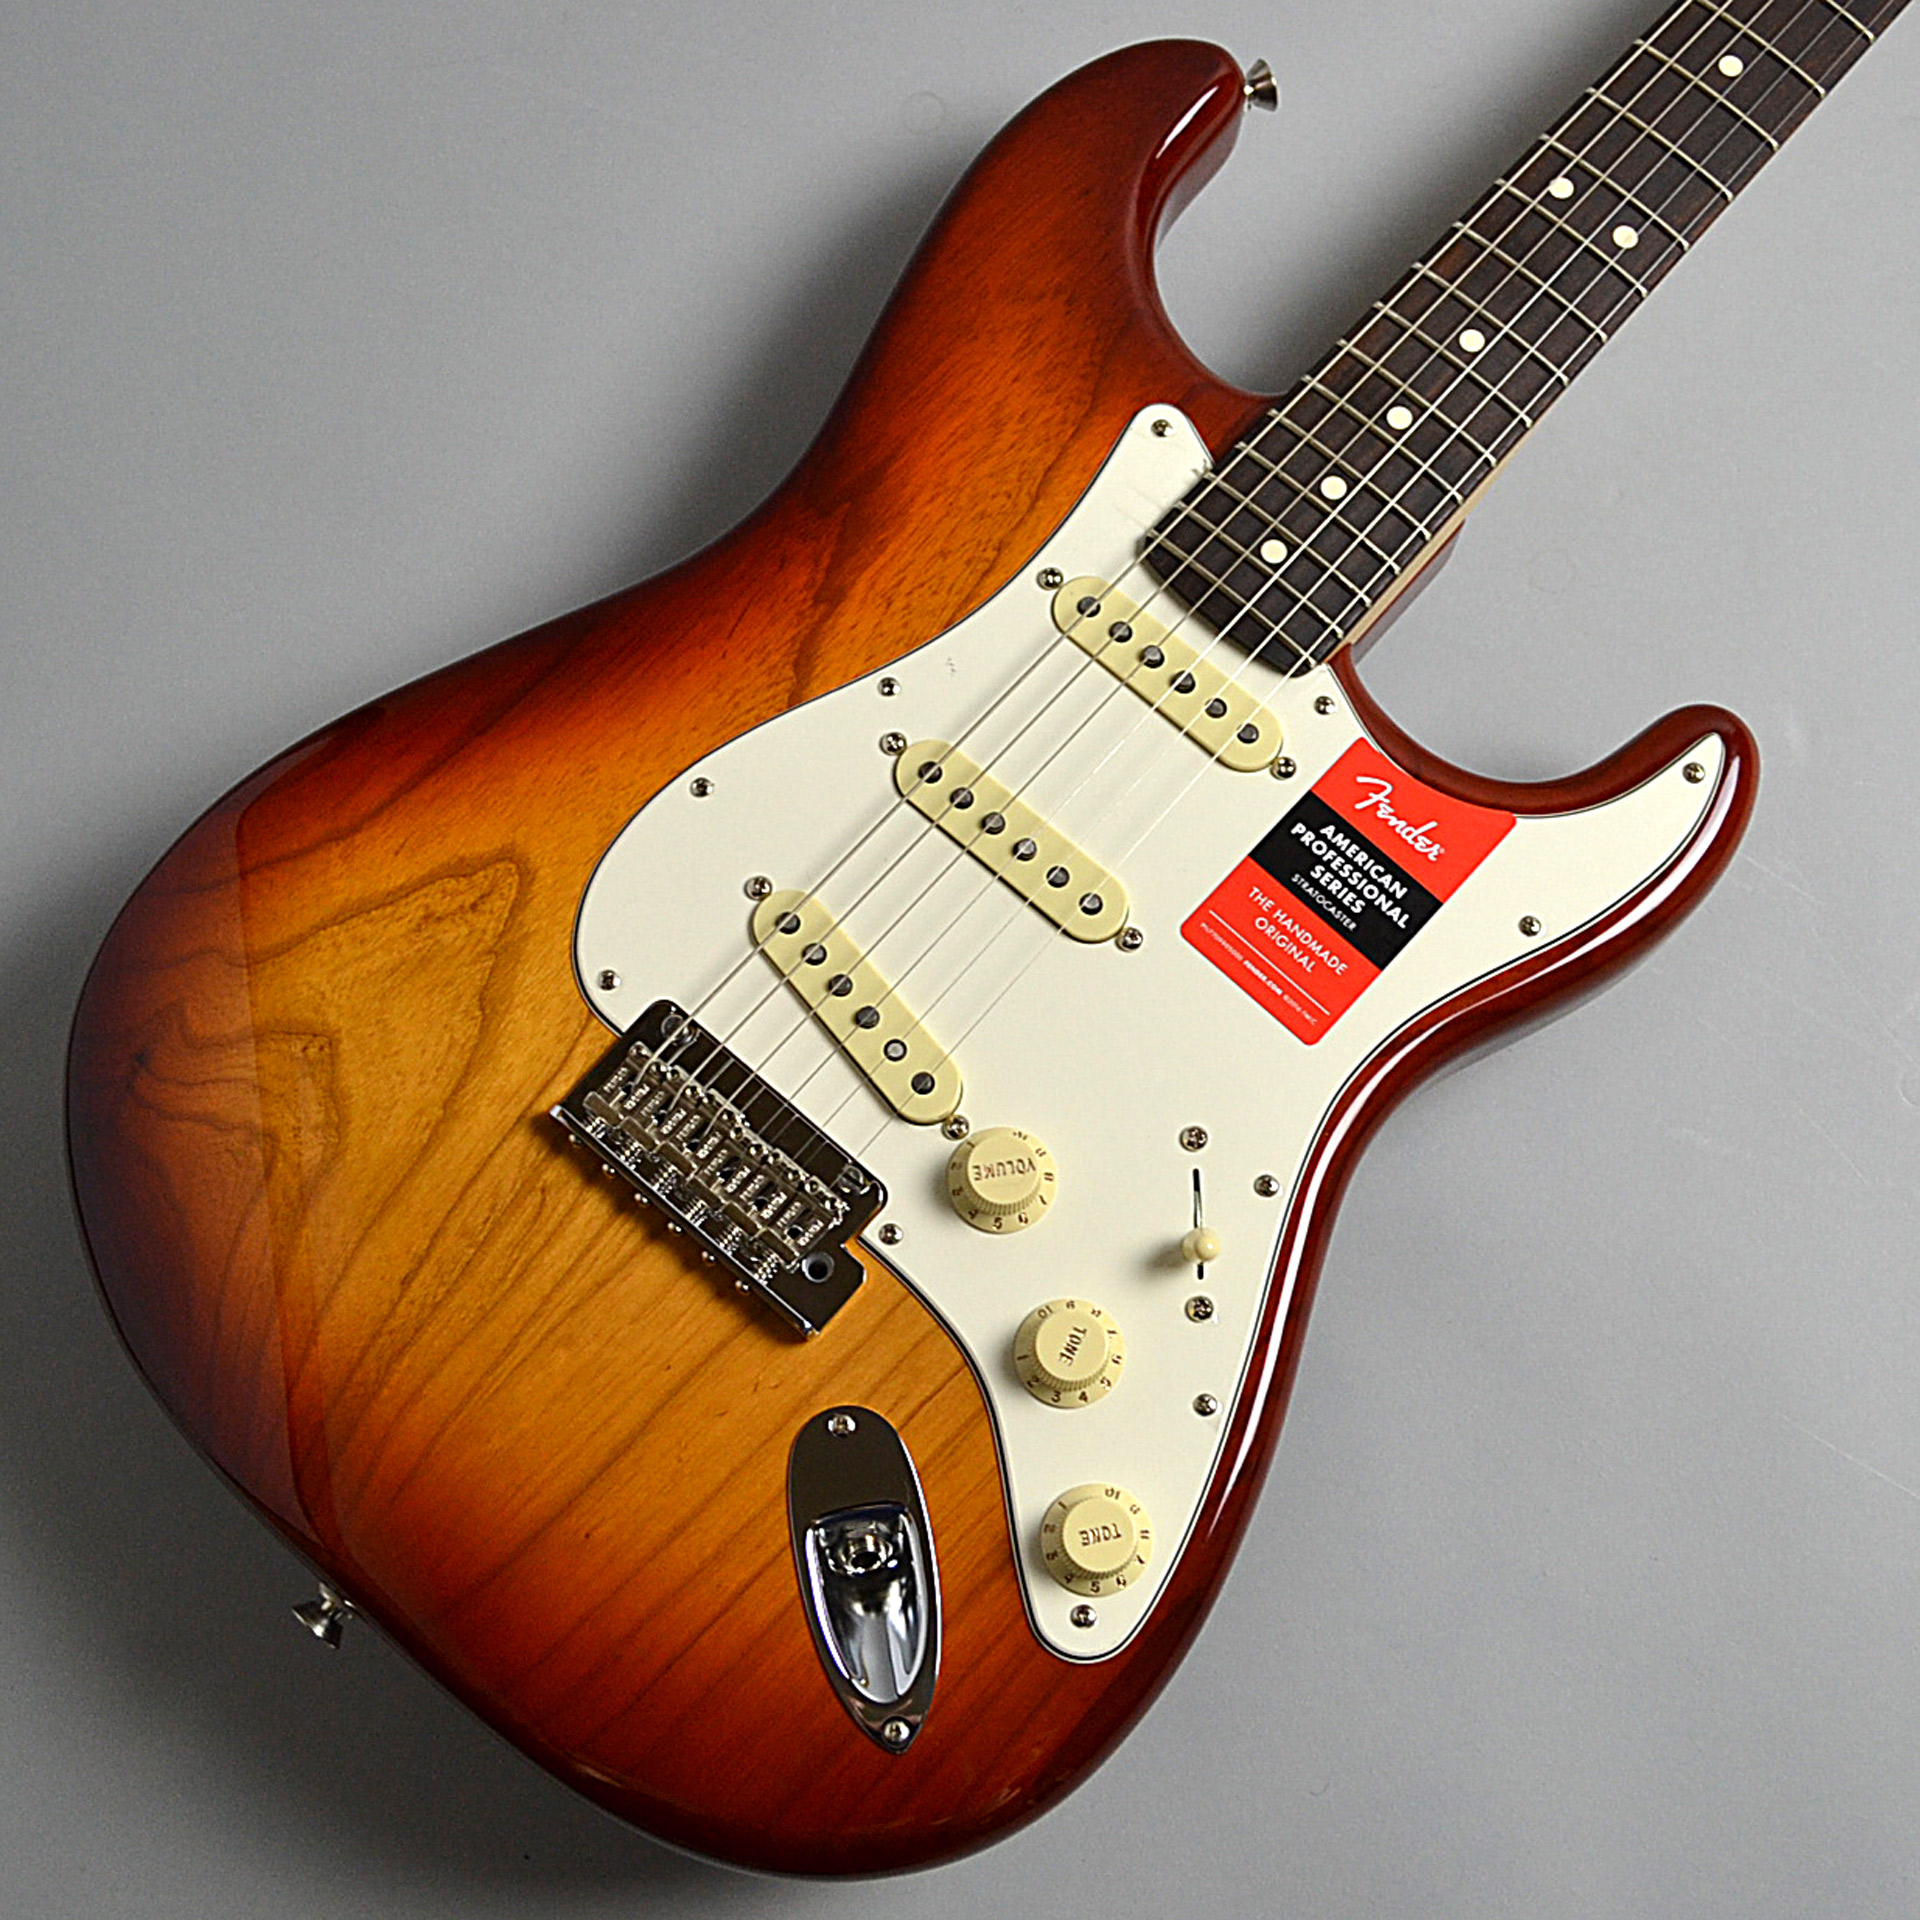 American Professional Stratcasterのボディトップ-アップ画像